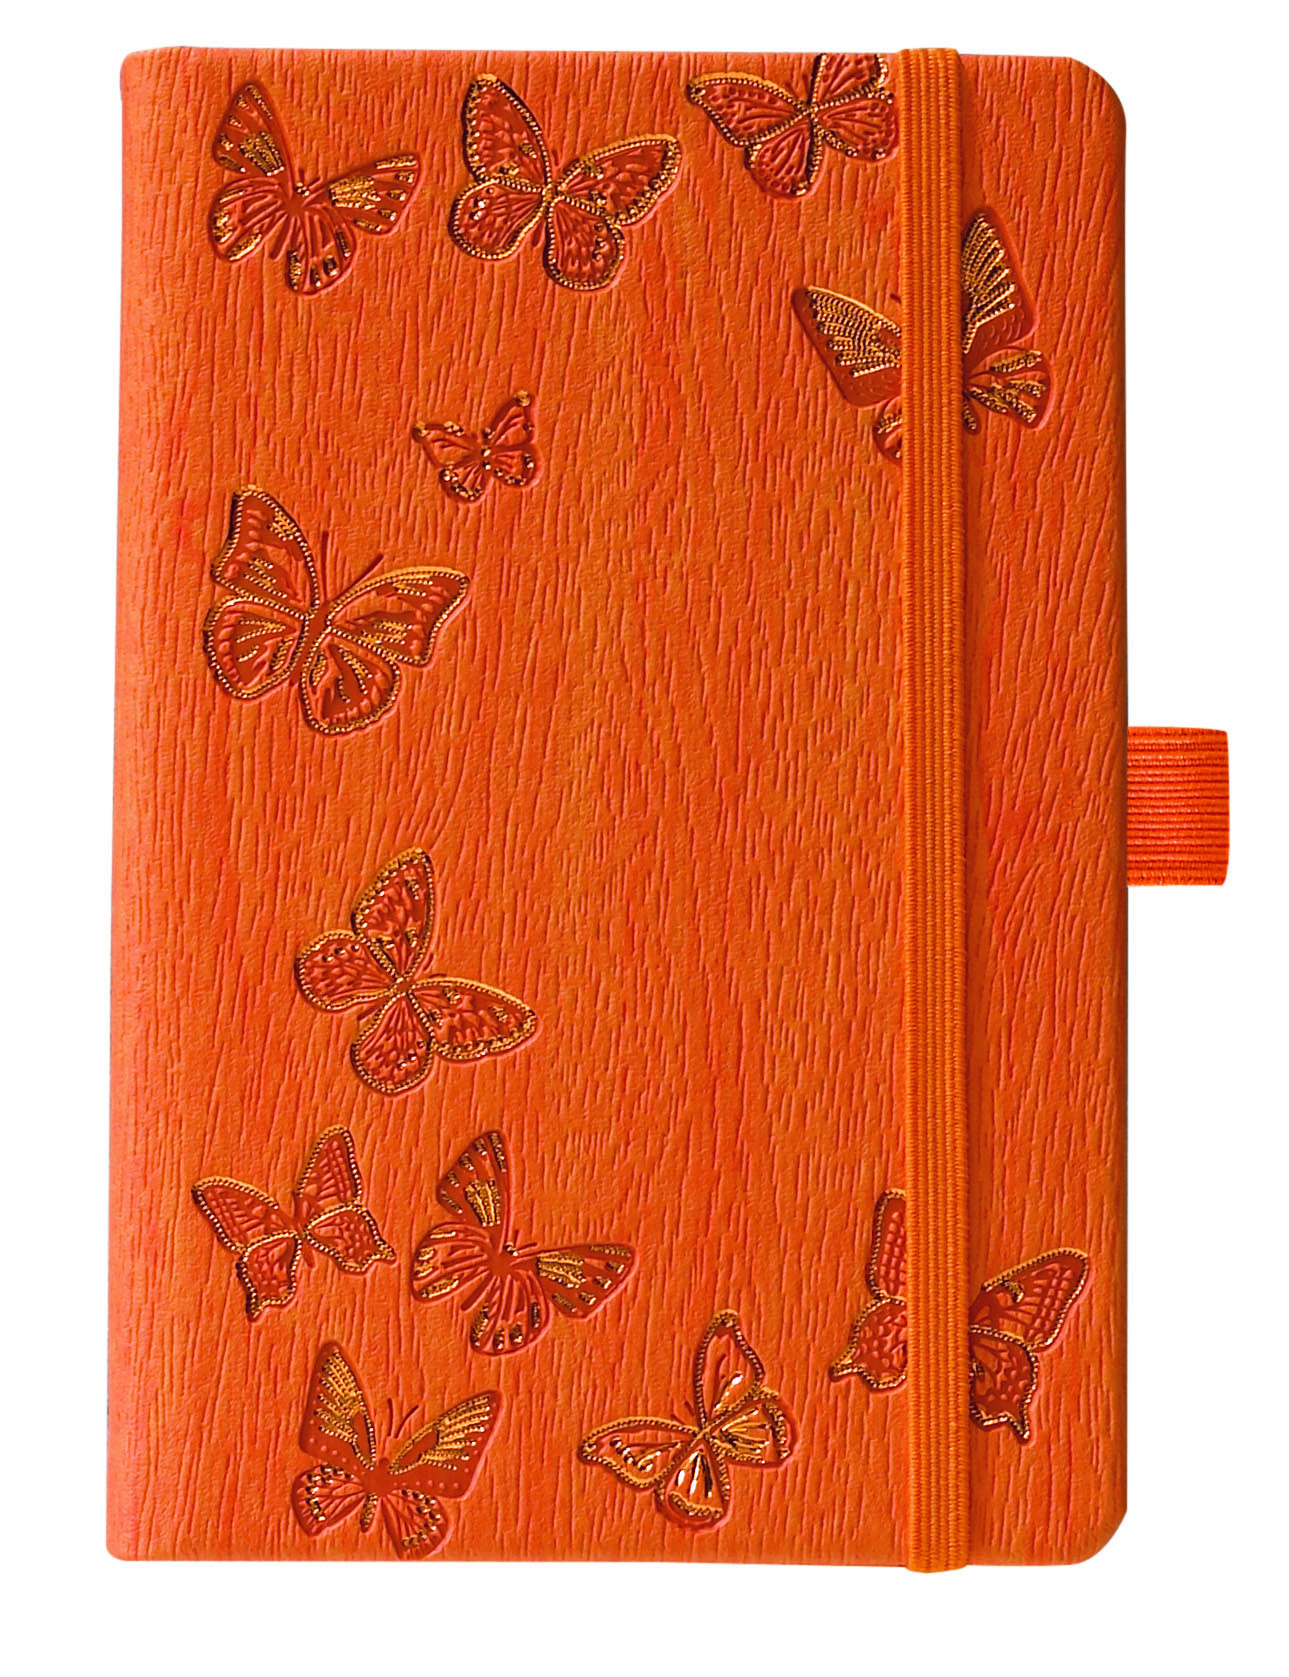 IVORY NATURE/PAPILLONS ORANGE 9 X 14 CM 192 PAGES